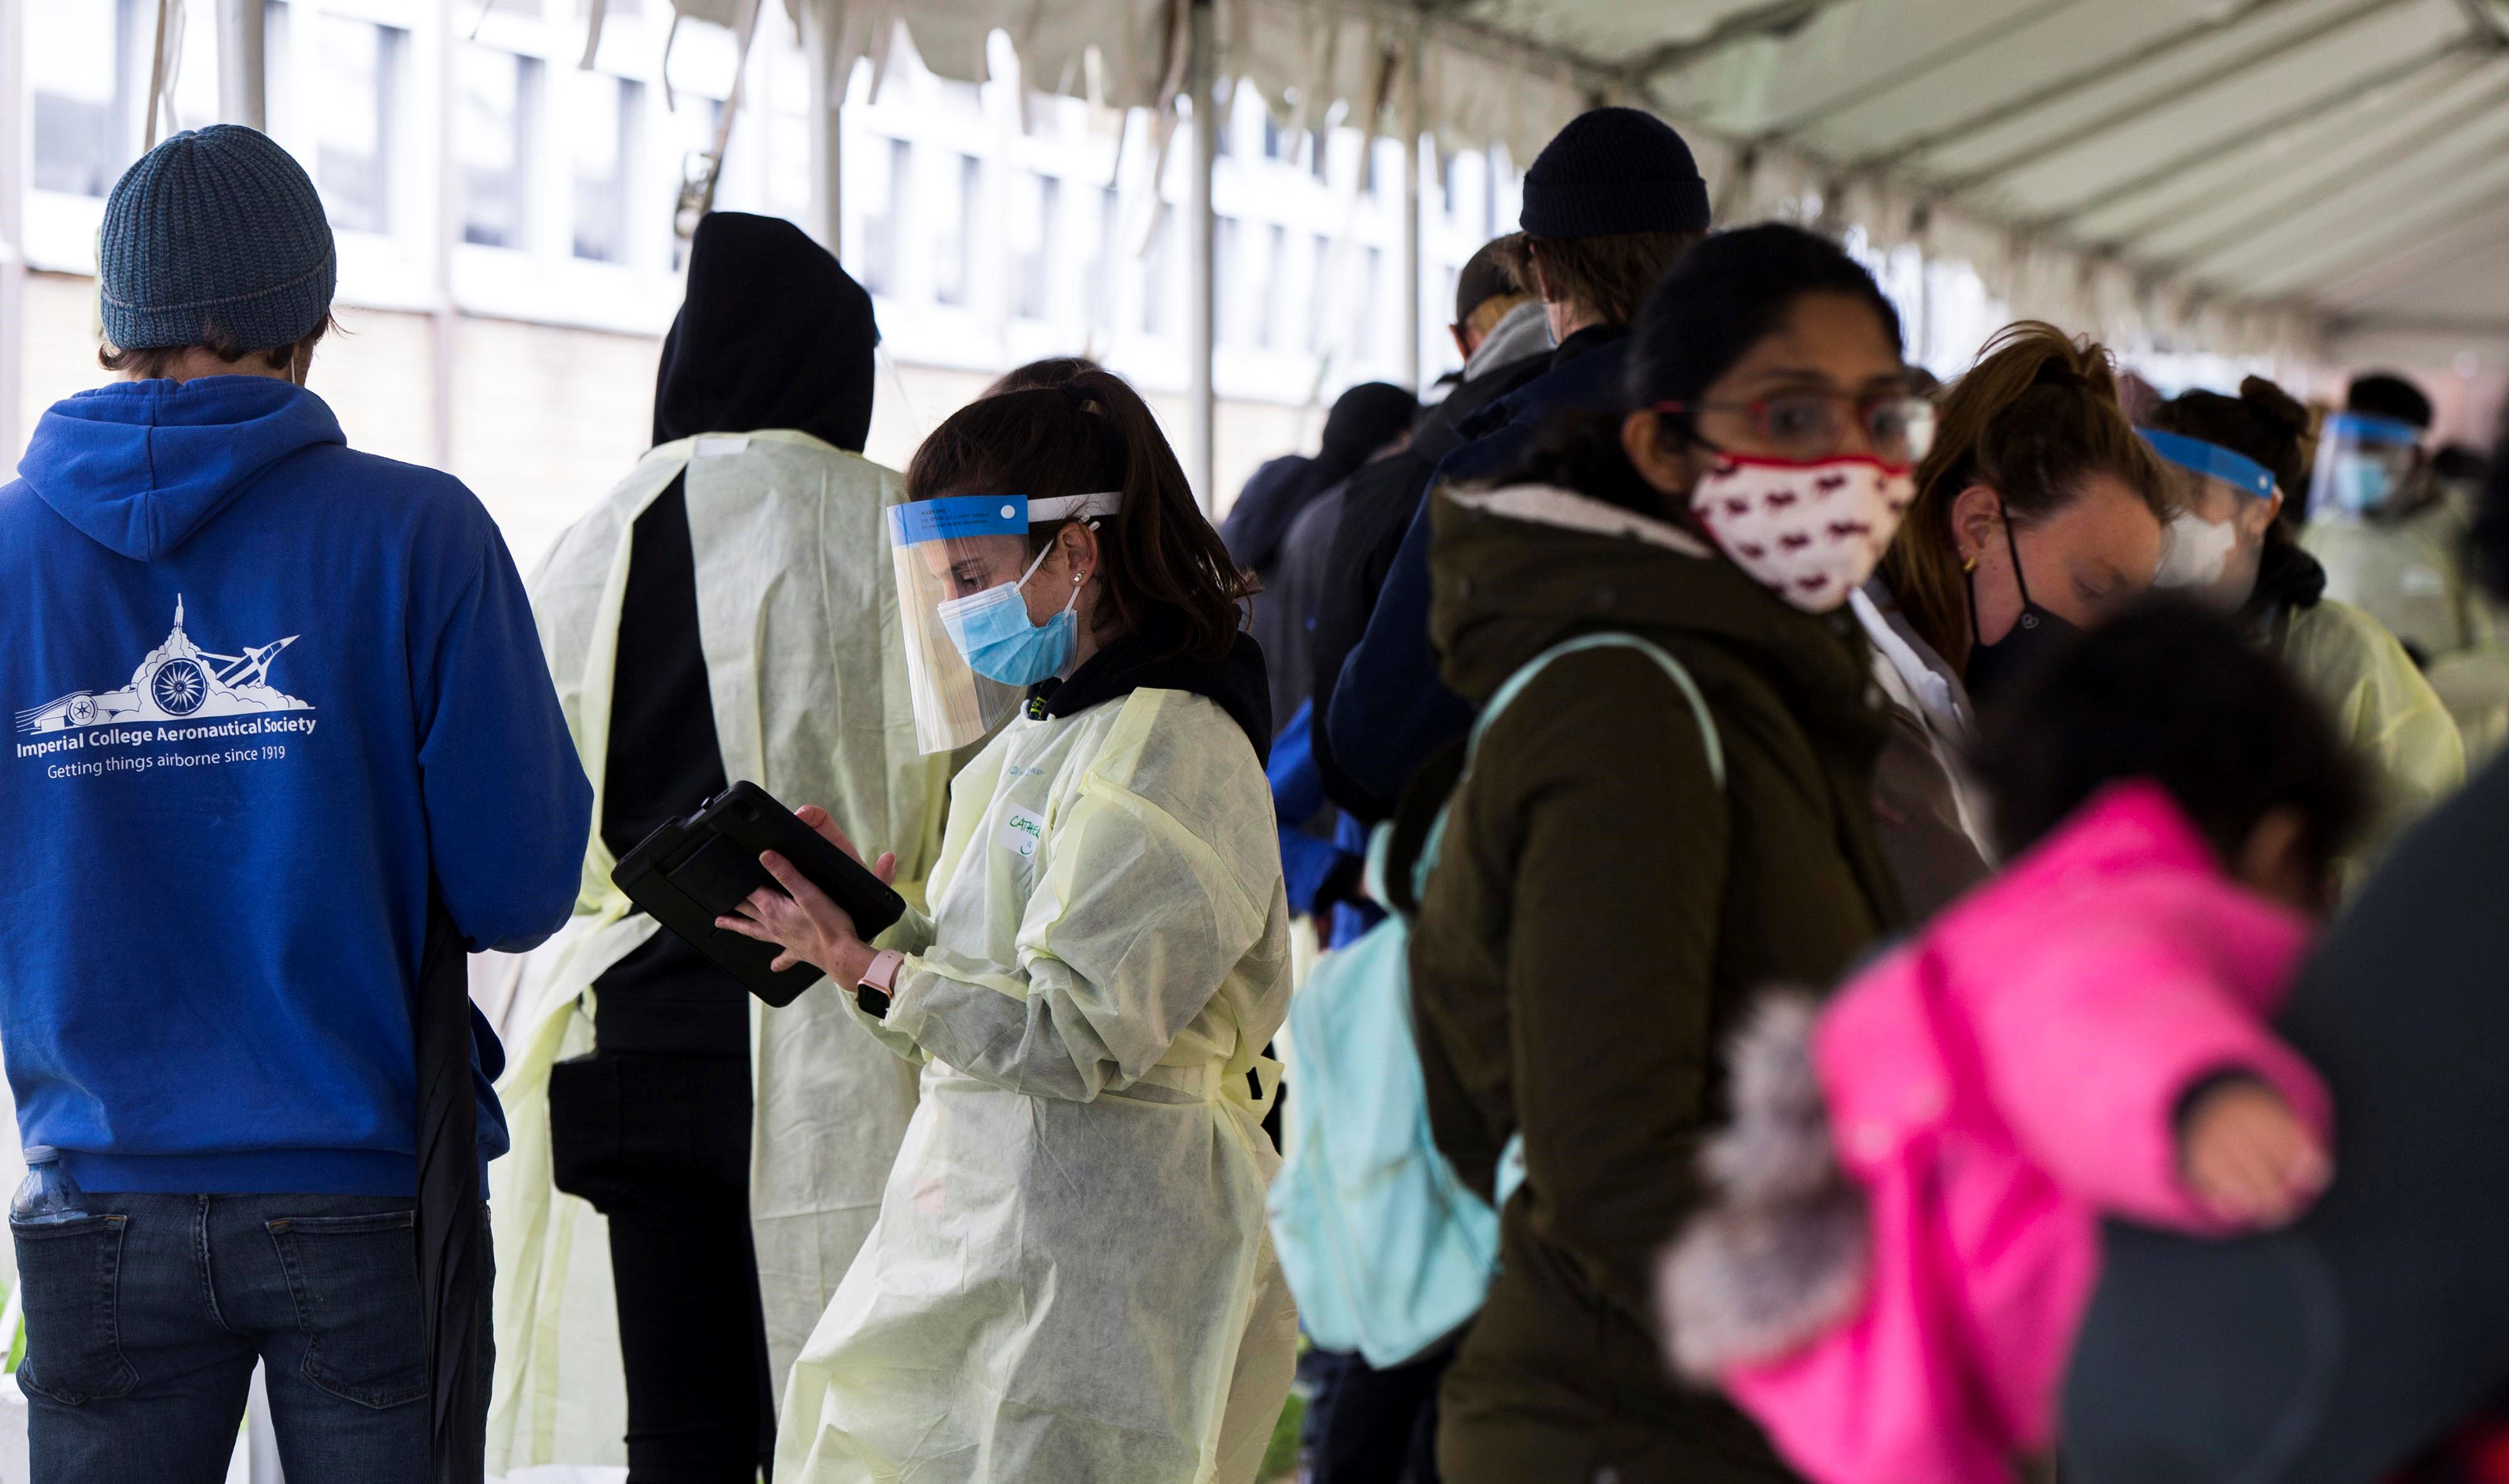 A medical staff member works at a COVID-19 vaccination clinic in Toronto, Ontario, Canada, on May 5.